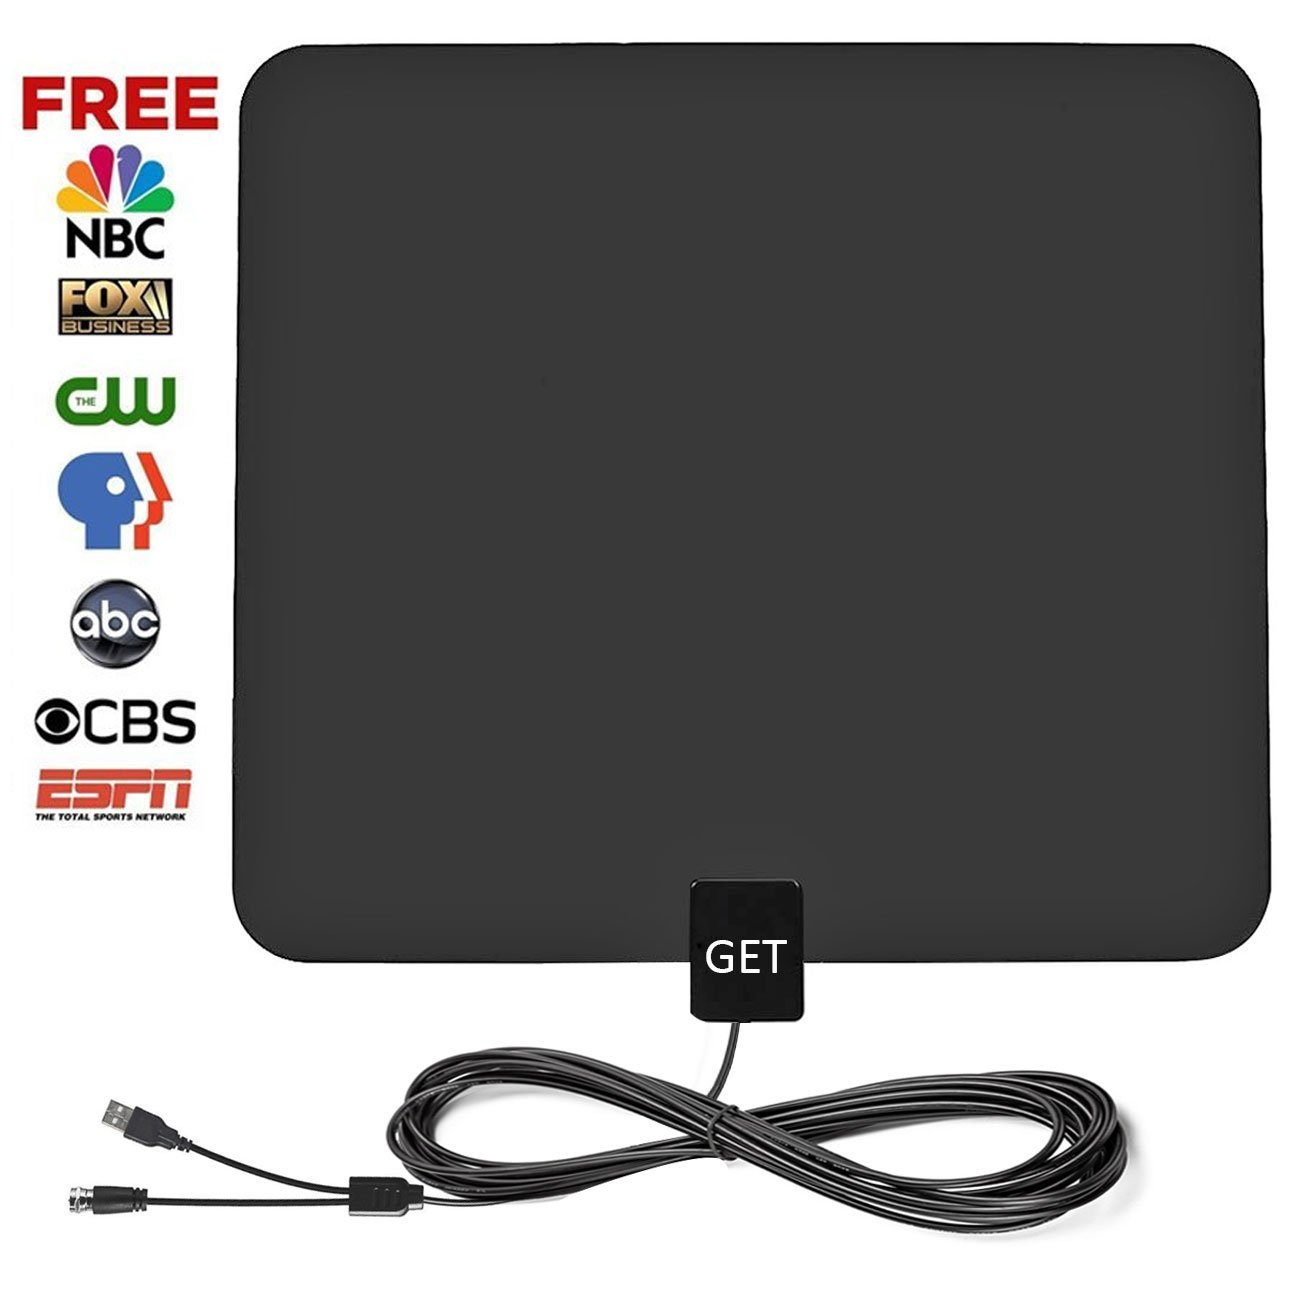 Amplified HDTV Antenna – Get 50 Mile Range Digital TV Antenna with 13.2ft High Reception Coax Cable(Upgraded Version)